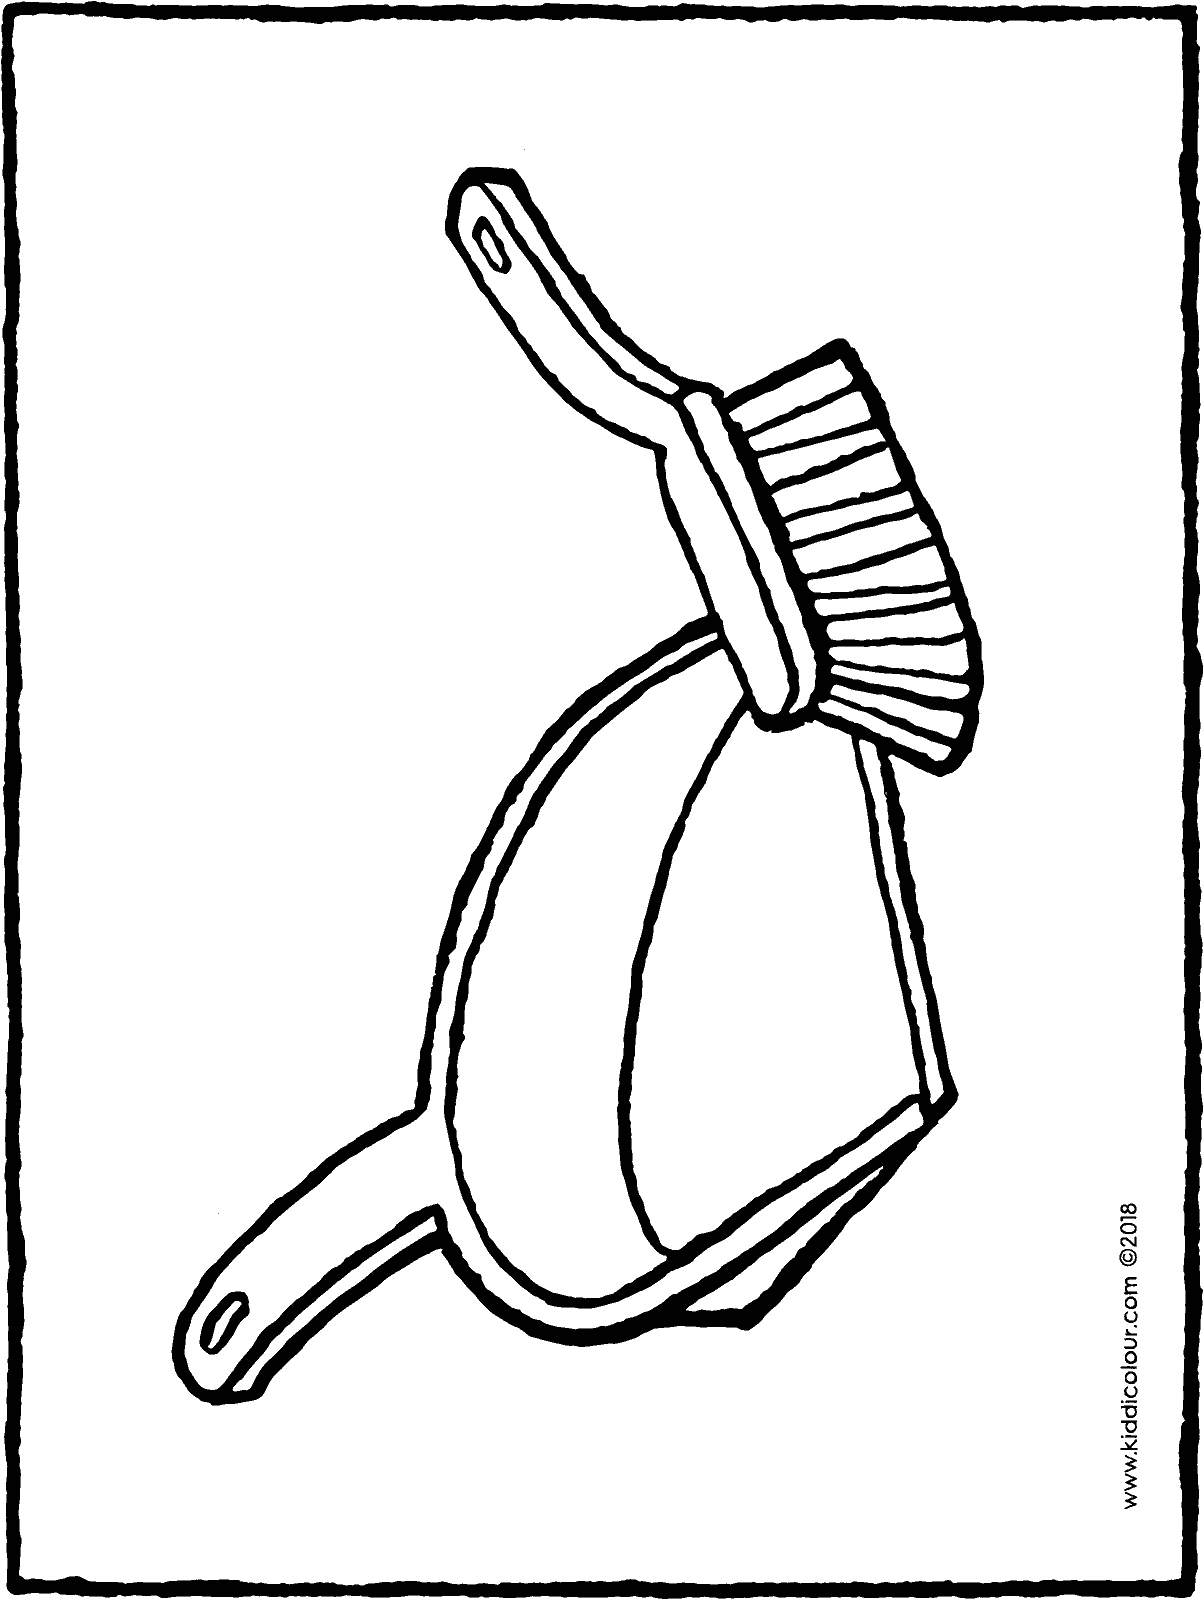 dustpan and brush colouring page drawing picture 01H